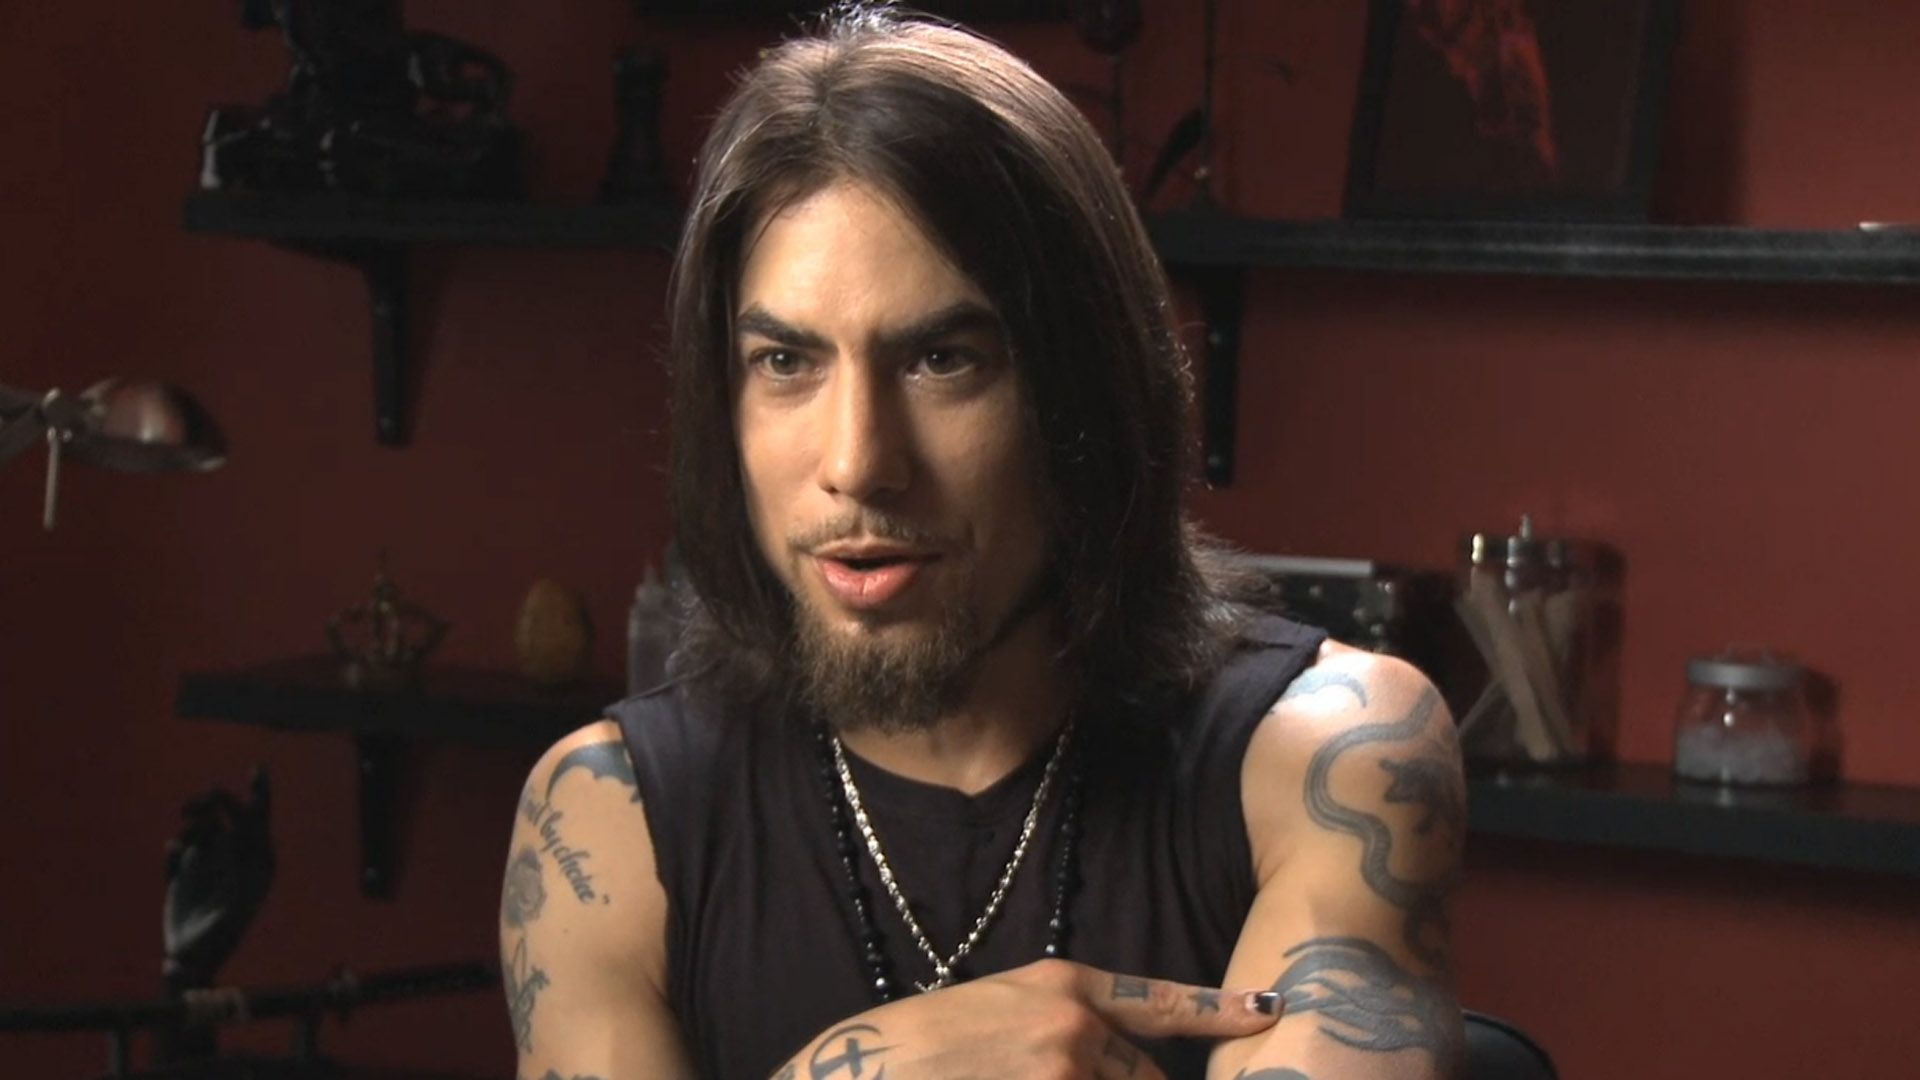 Dave navarro ink master tattoos pictures to pin on for Dave navarro tattoo work